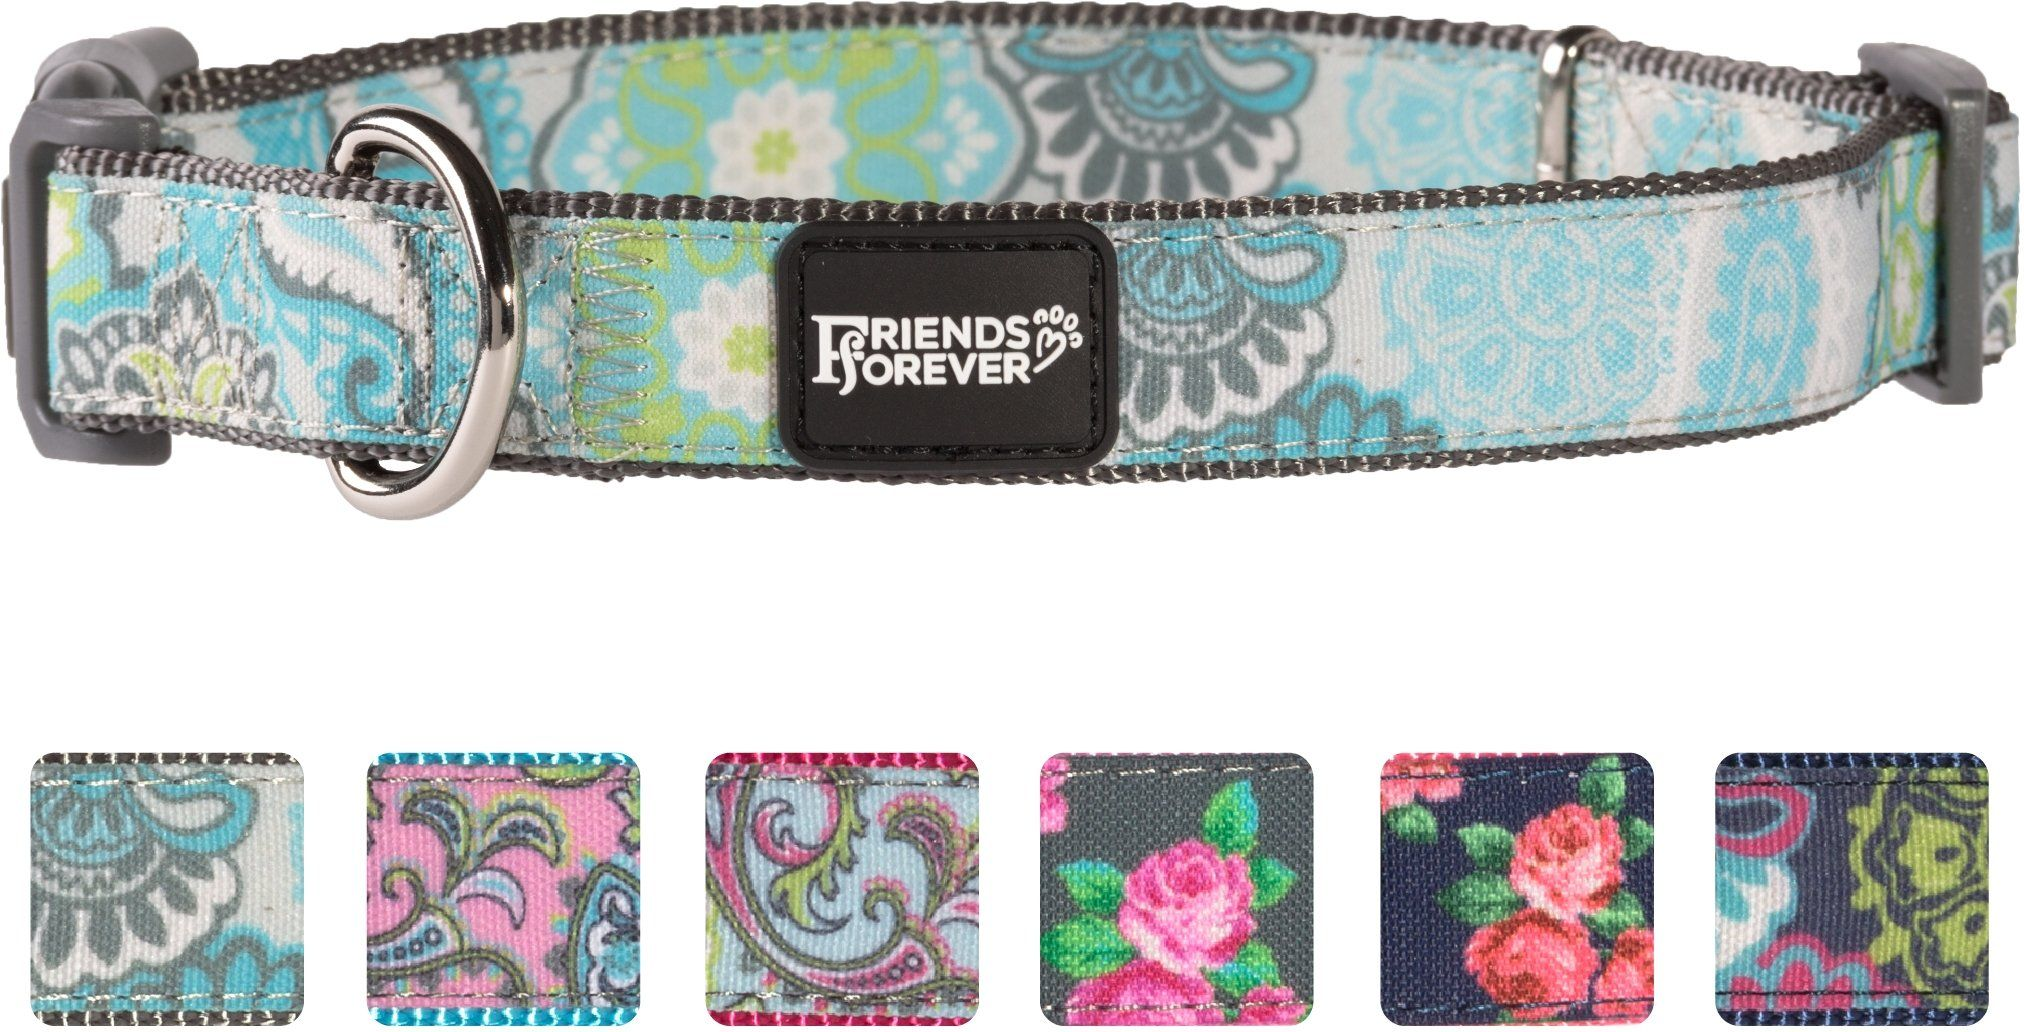 Friends forever dog collar dogs fashion print paisley